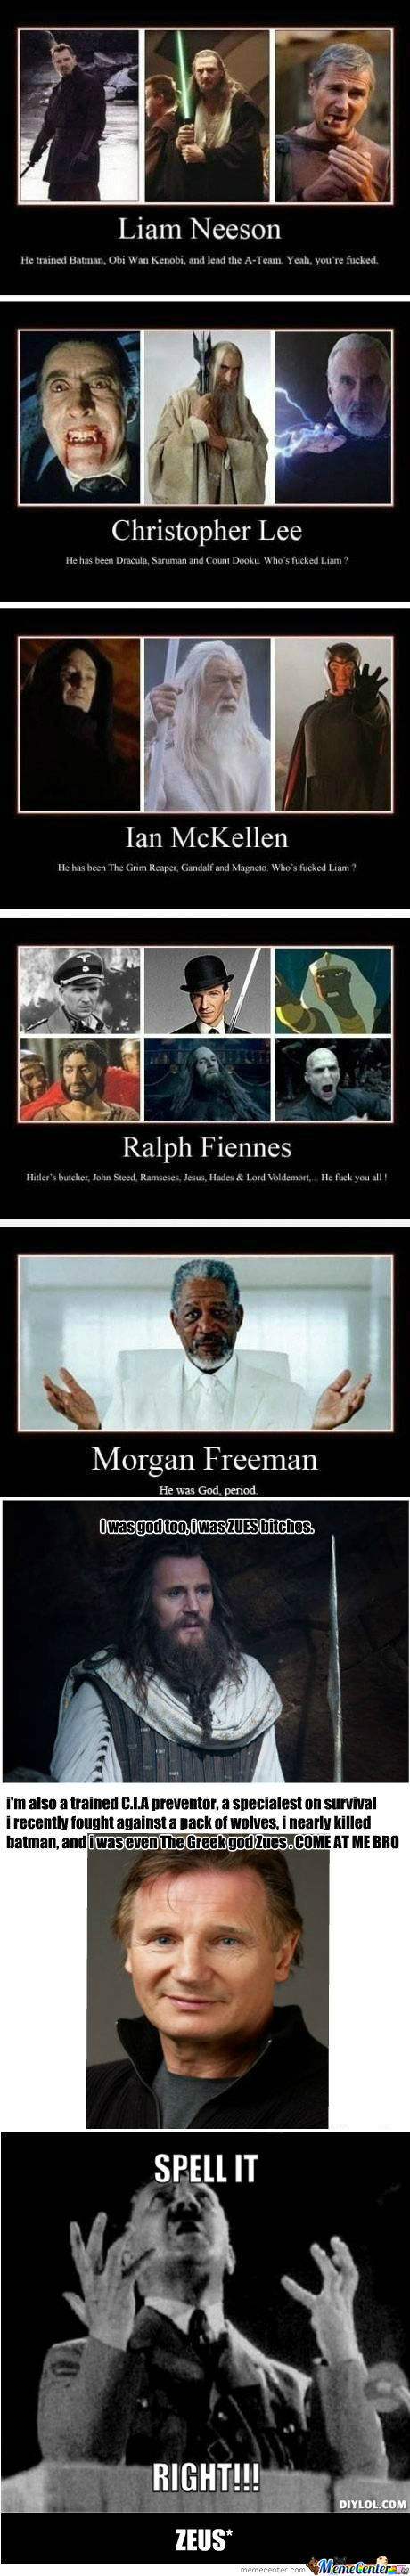 [RMX] [RMX] Morgan Freeman